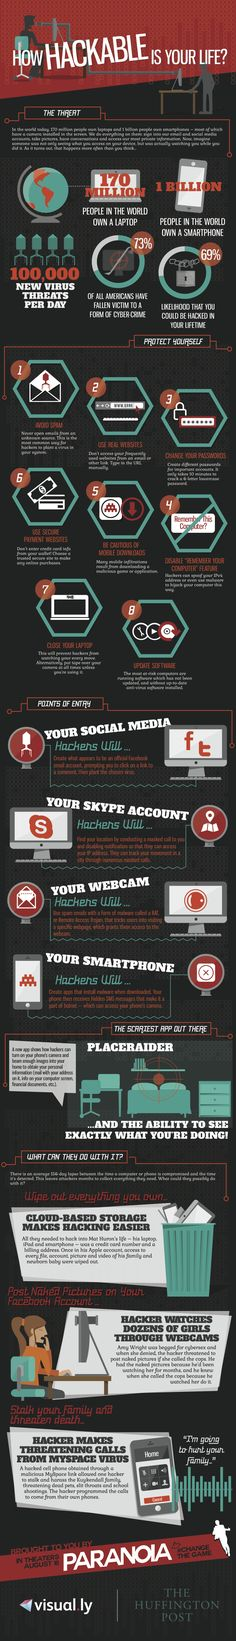 how hackable is your life 5201107683ee9 How Hackable Is Your Life? | Infographic